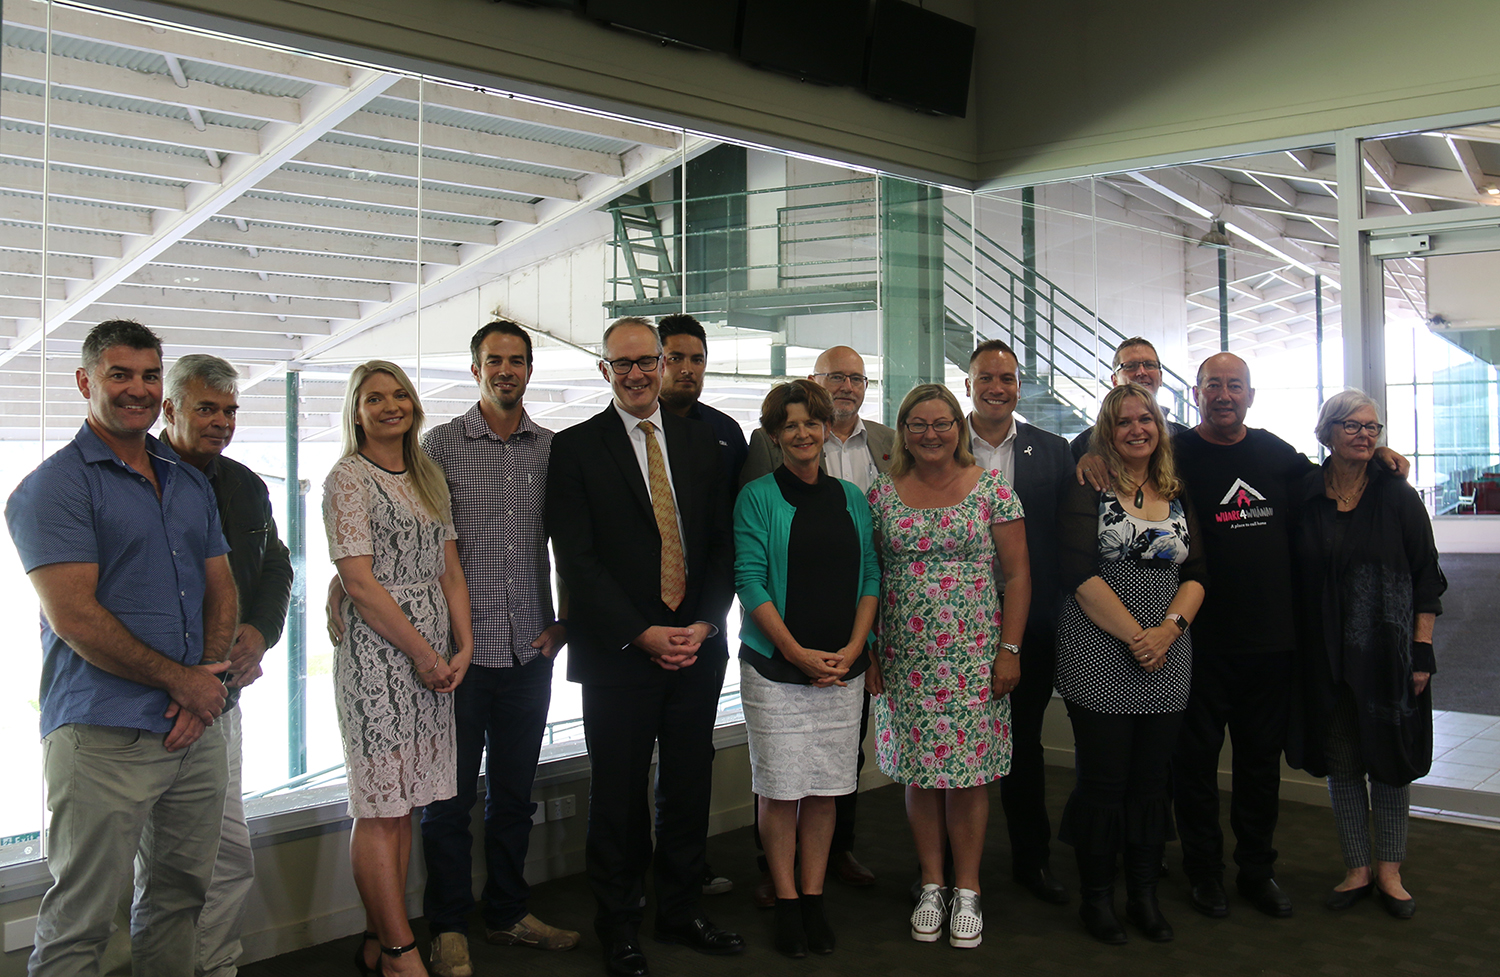 Hon Phil Twyford, Vicki McLaren and other members of the Housing Forum